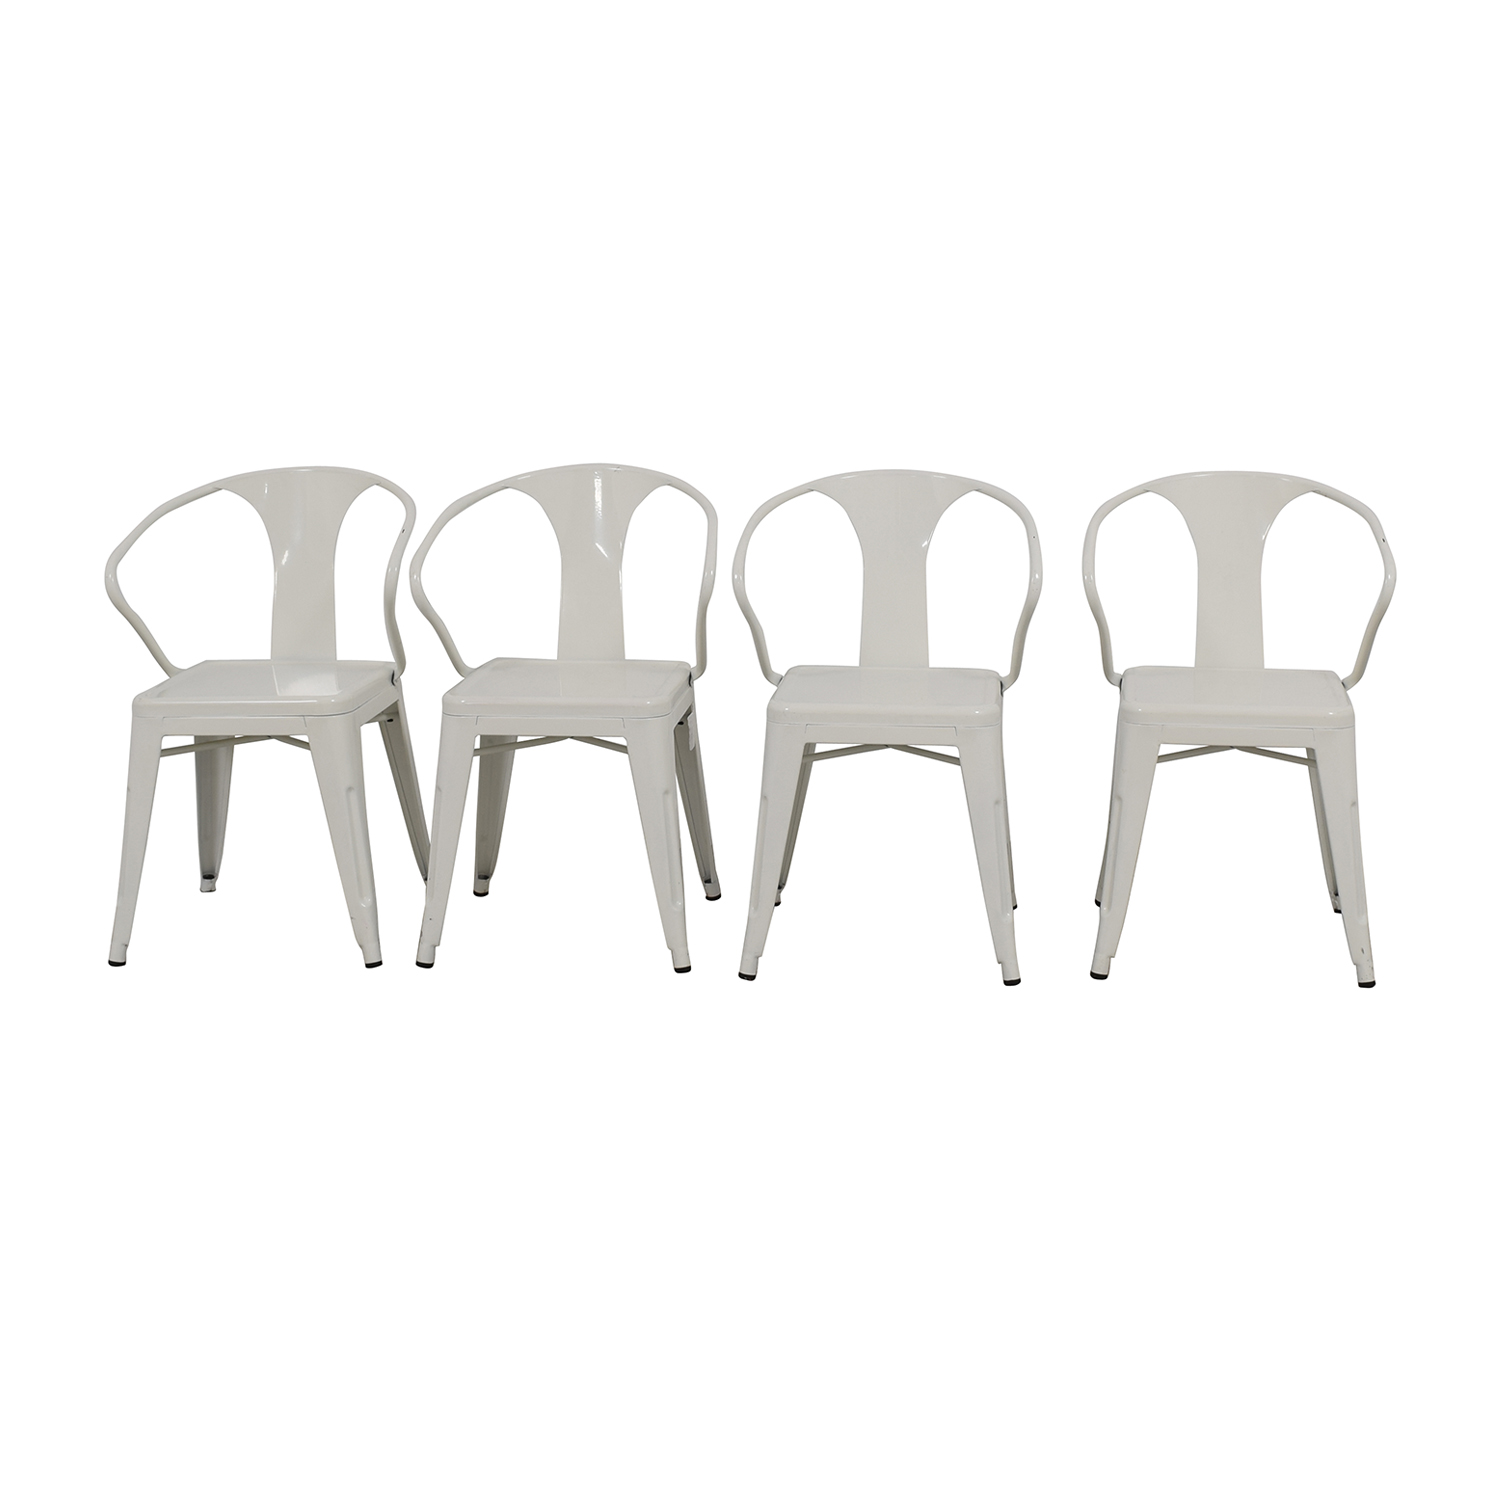 Overstock Overstock White European Chairs used